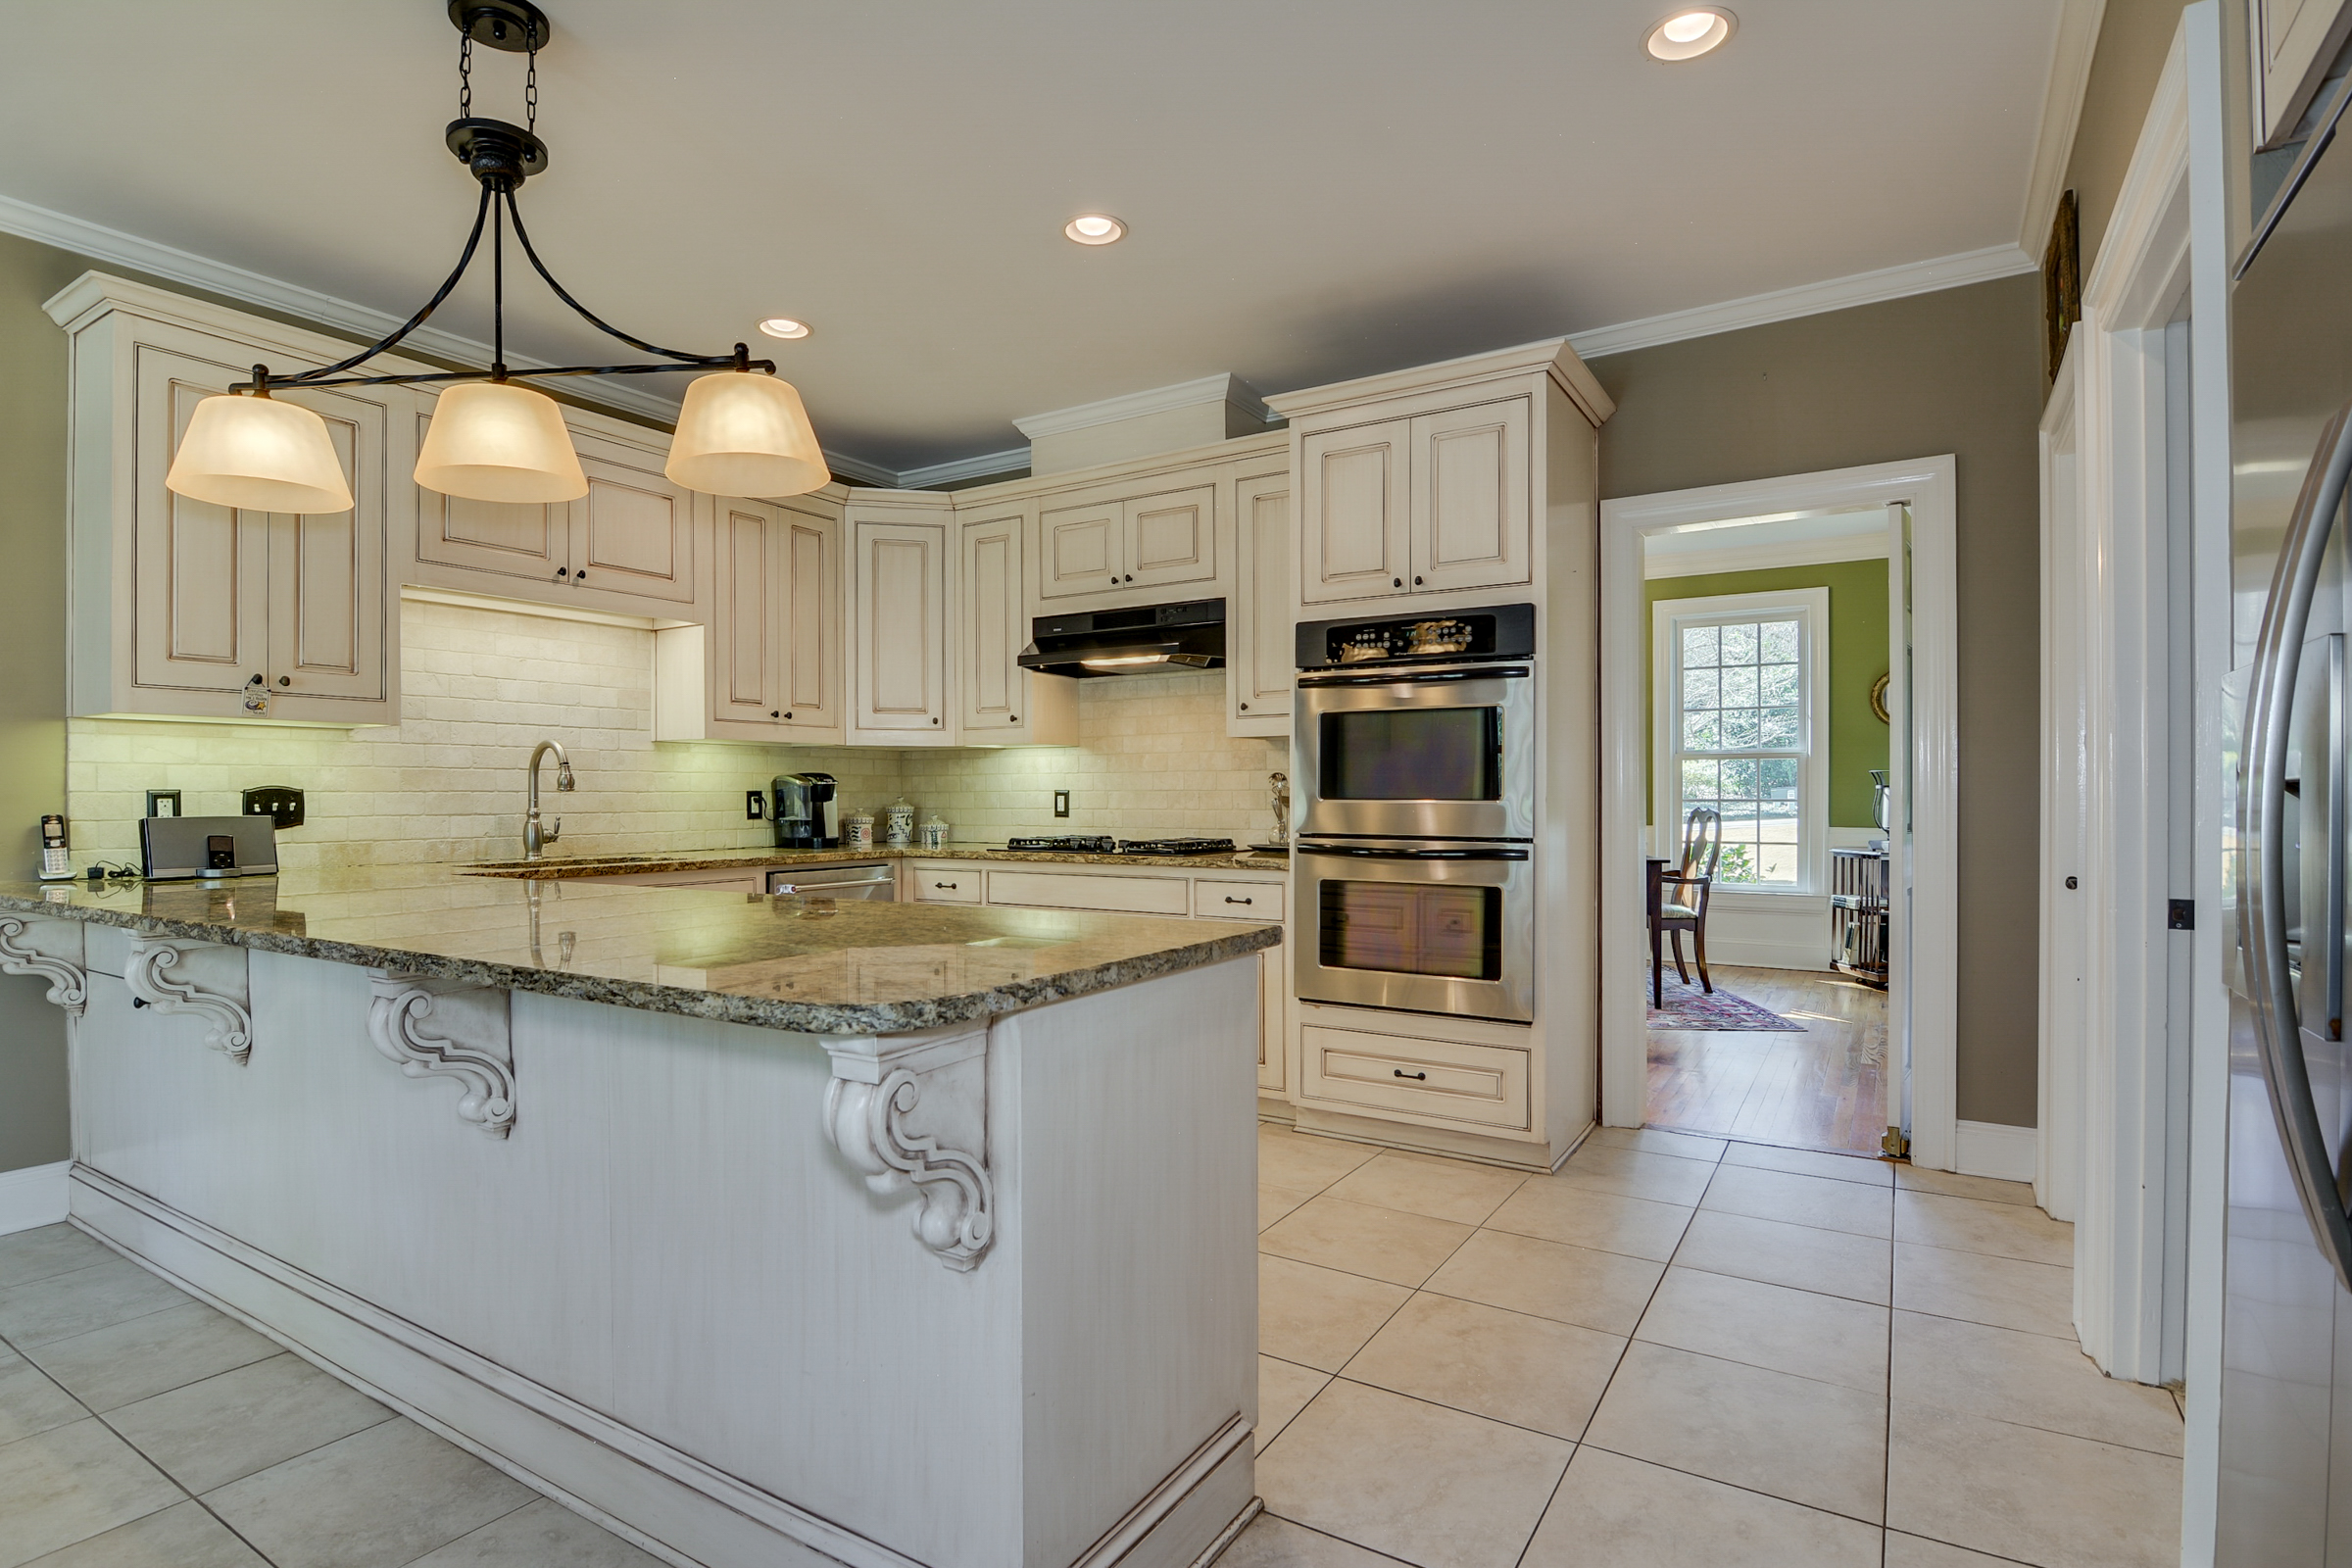 great caddy counter cheap kitchen augusta picture concrete cool ga tag of countertops green granite probably outrageous waterfall